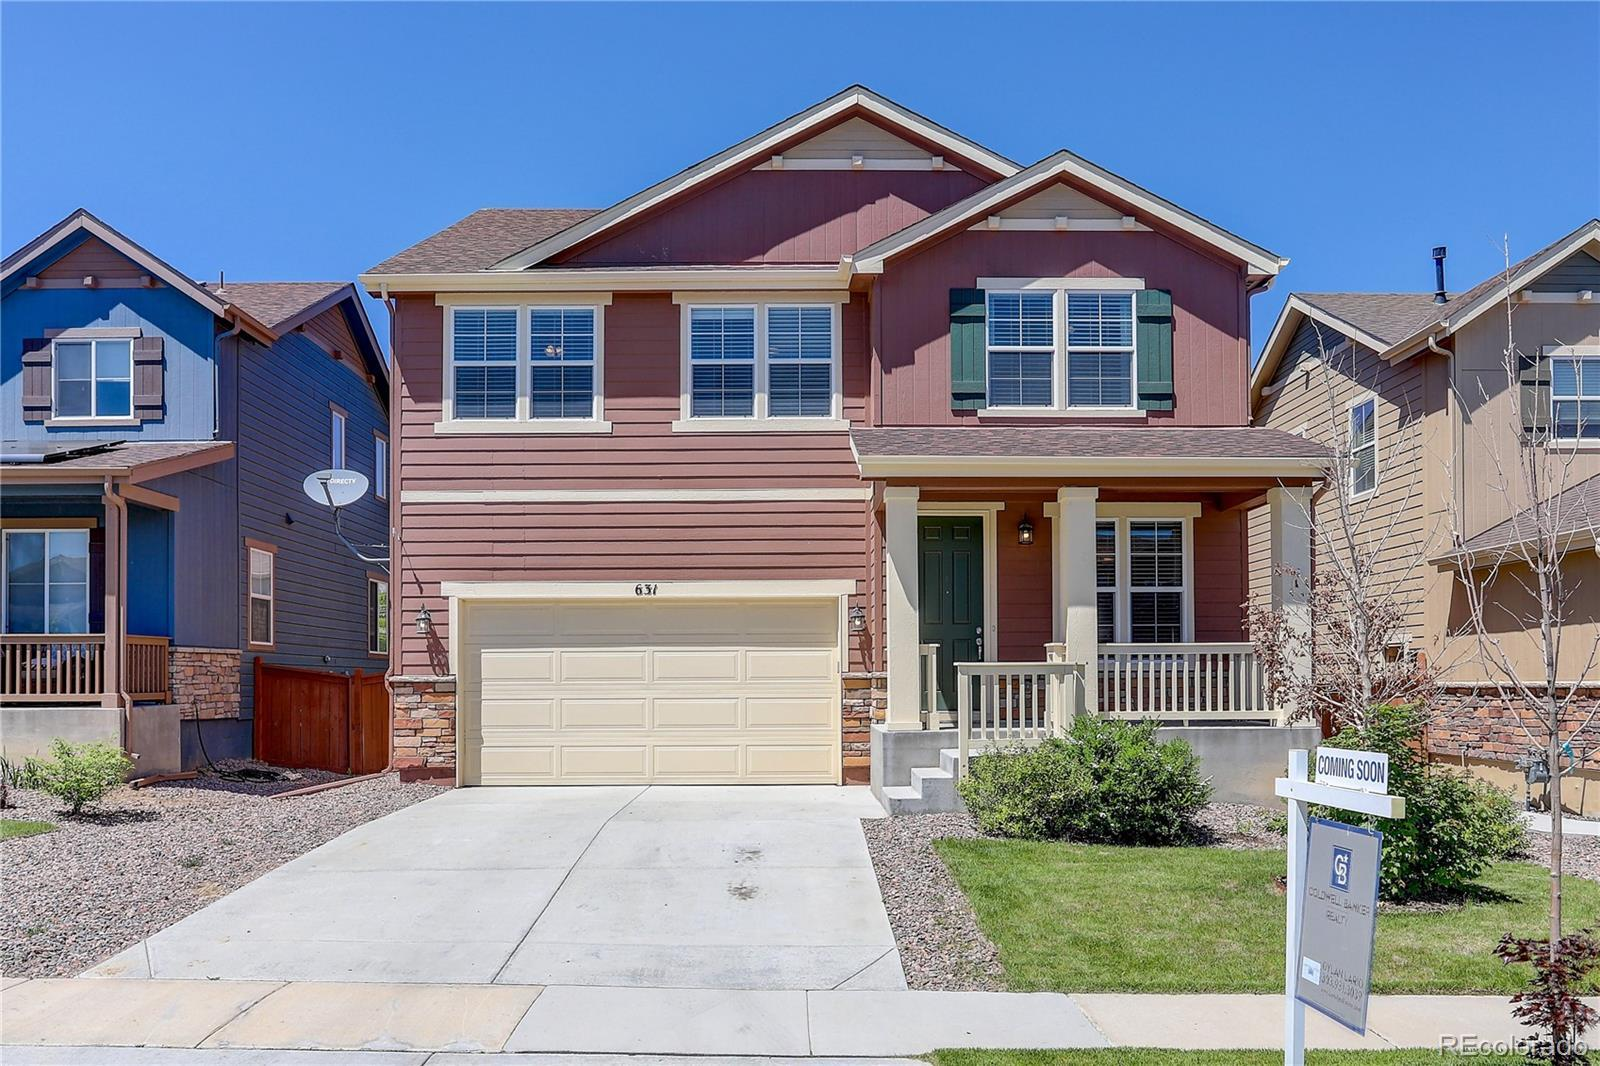 631 W 170th Place, Broomfield, CO 80023 - #: 5558458